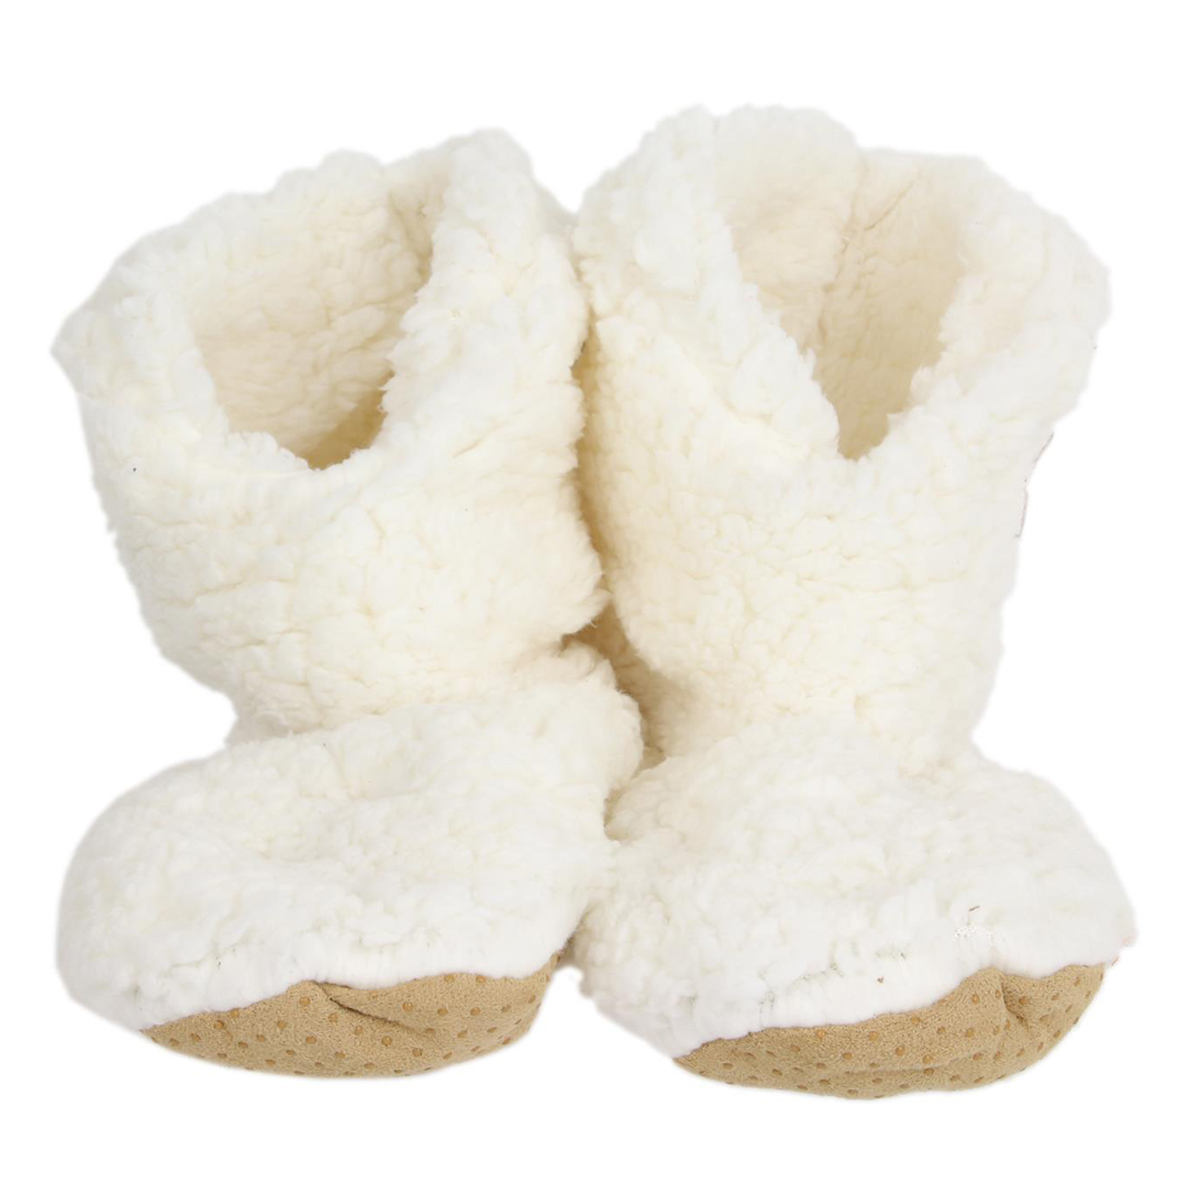 Chausson hiver \'Sherpa\' beige - taille 38-39 - [A0041]